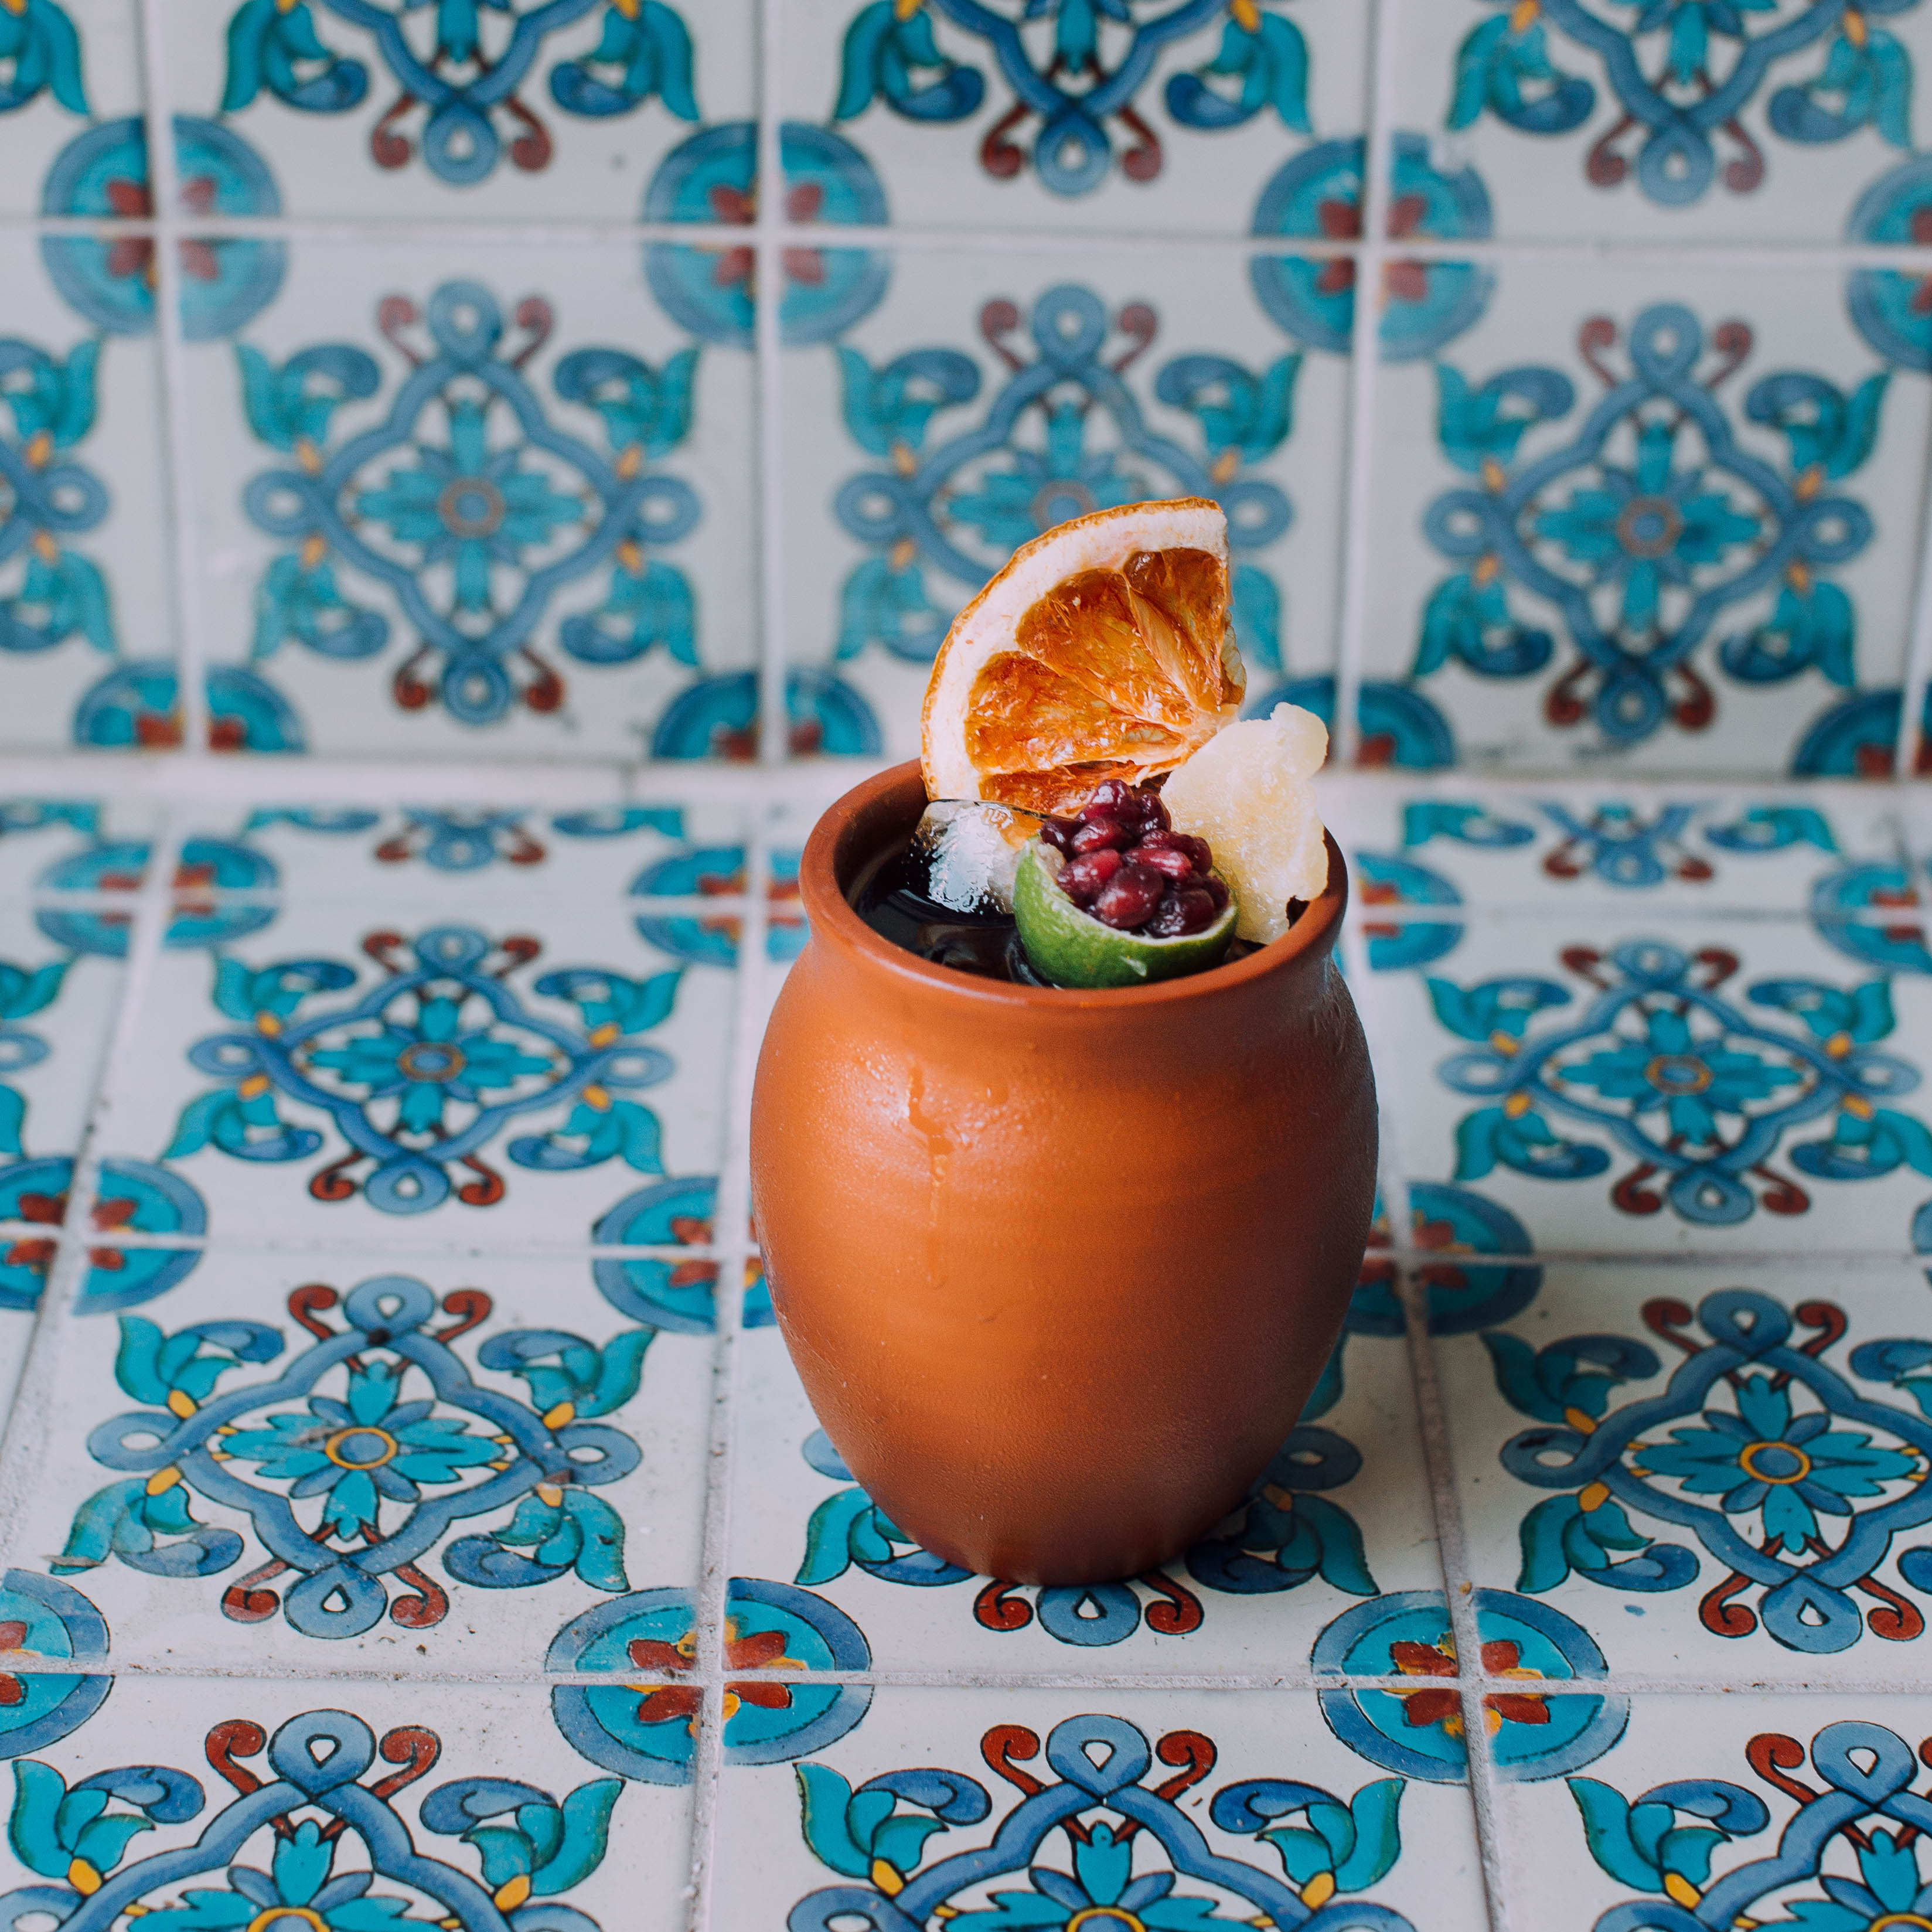 Check Out the Menu for Te Deseo, the Harwood's New Latin-American Hotspot